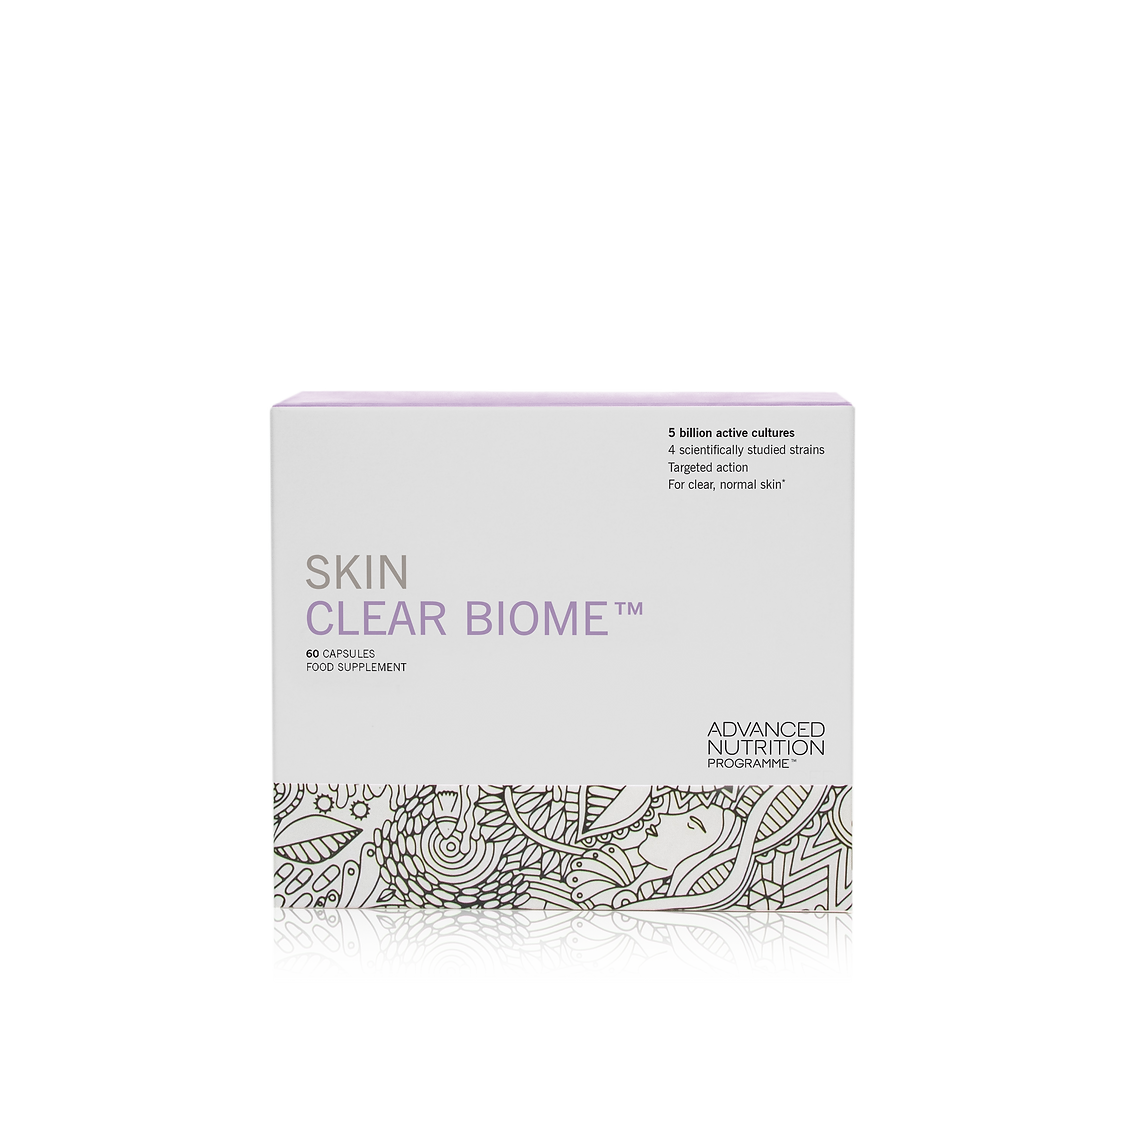 Skin-Clear-Biome-.png